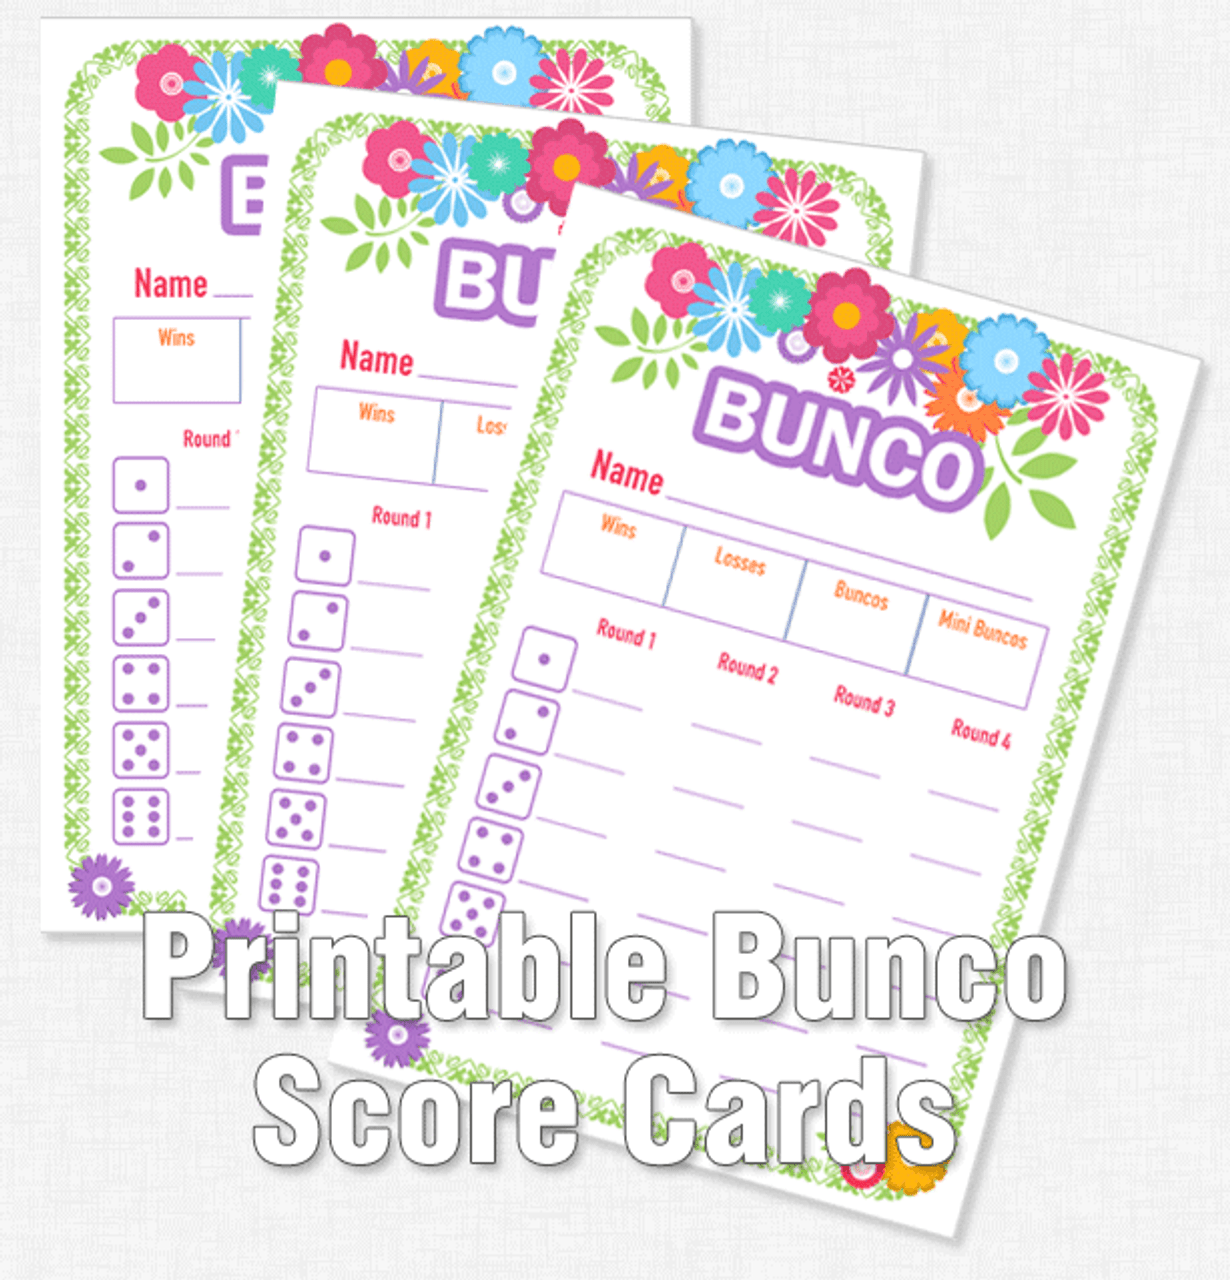 graphic about Bunco Rules Printable named Printable Flower Bunco Ranking Playing cards